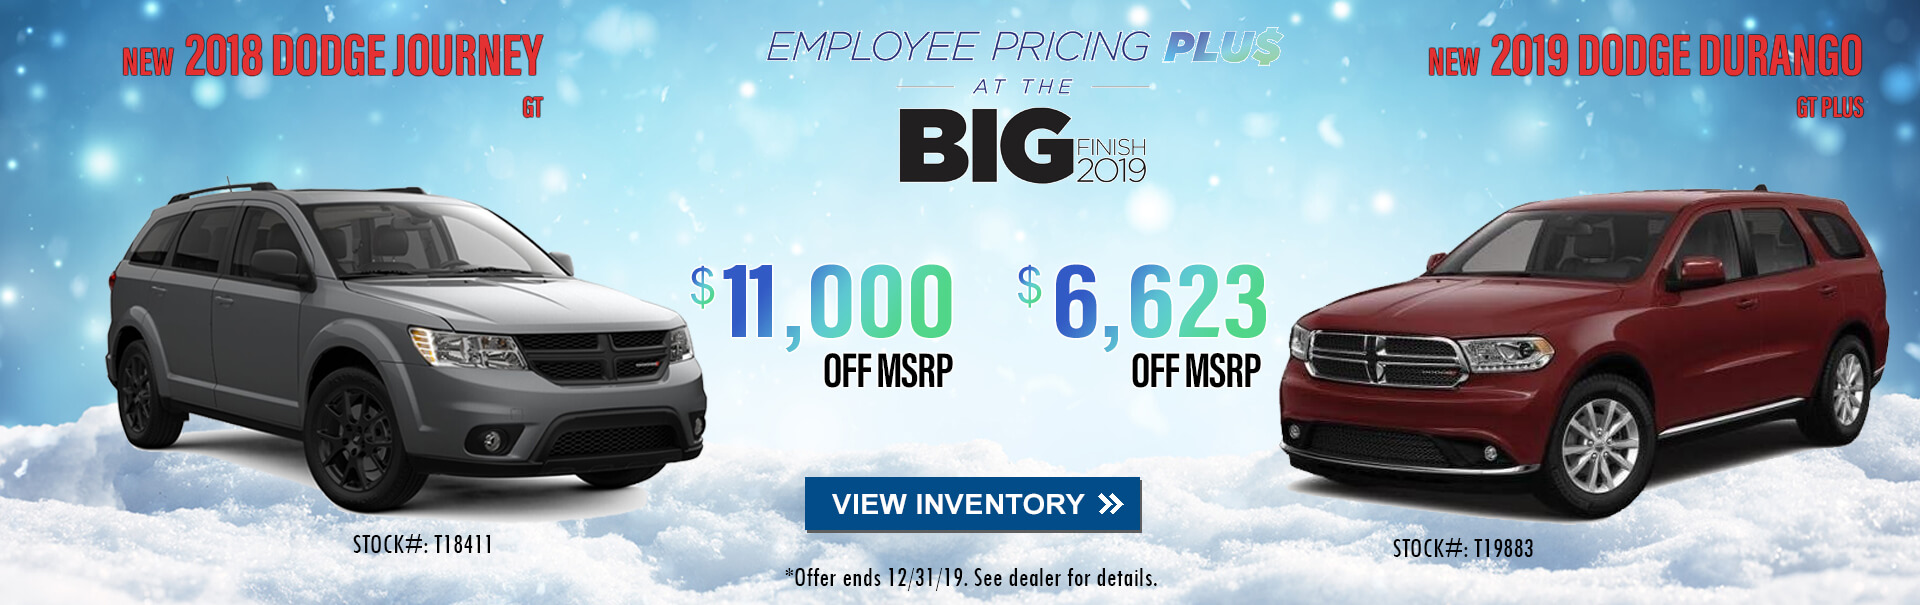 Dodge Employee Pricing Plus at the Big Finish near Alhambra CA